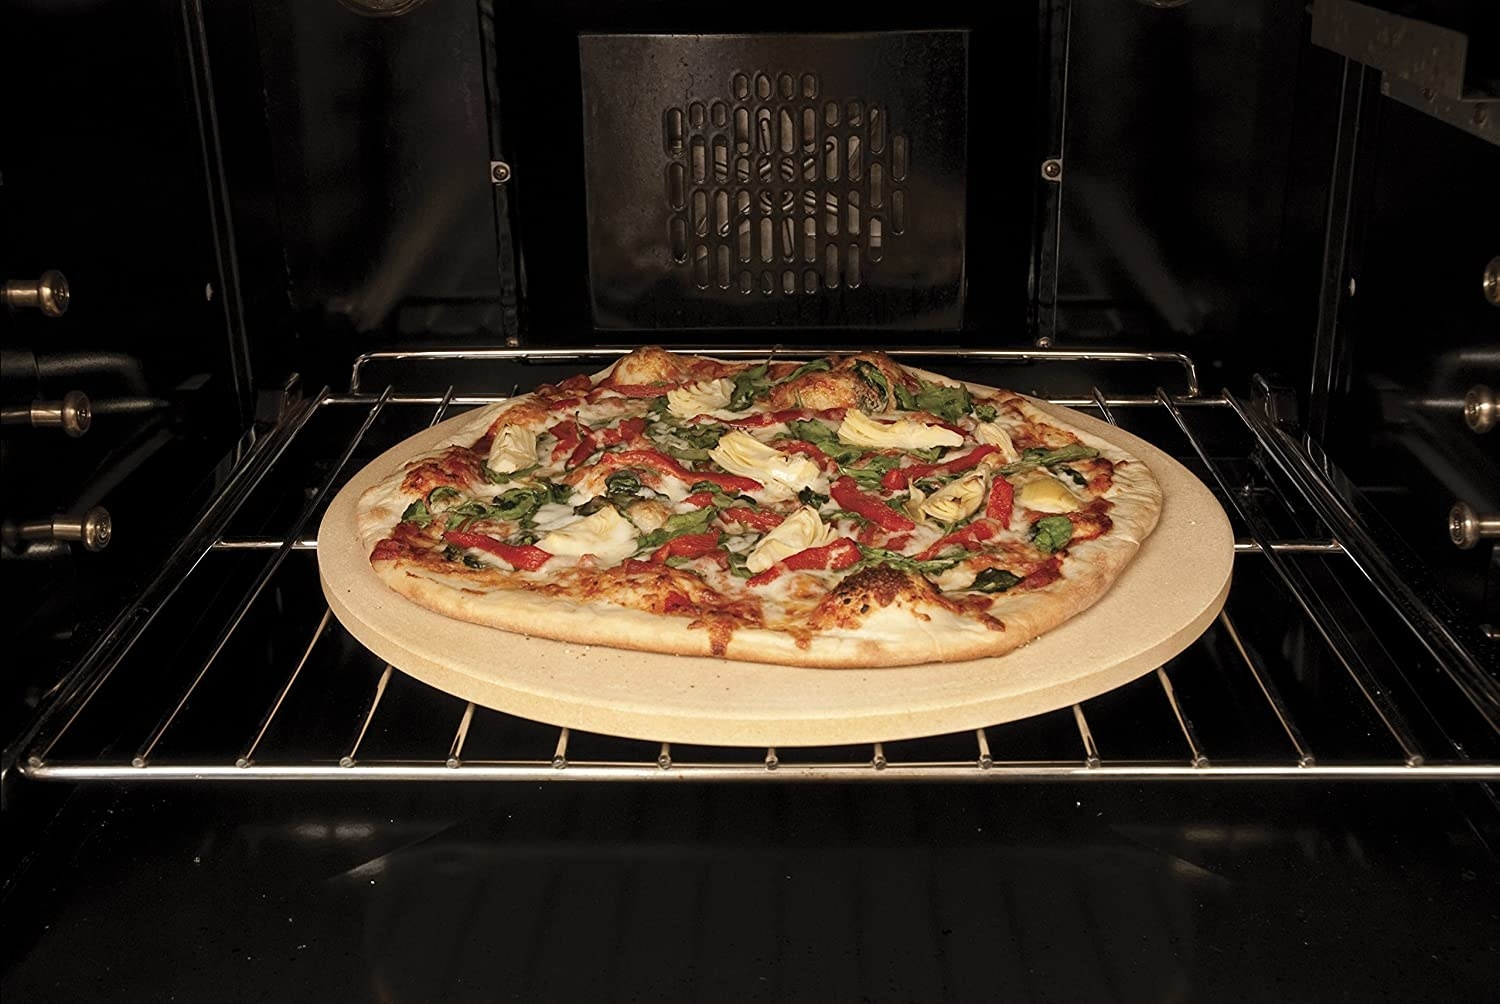 A pizza stone in an oven